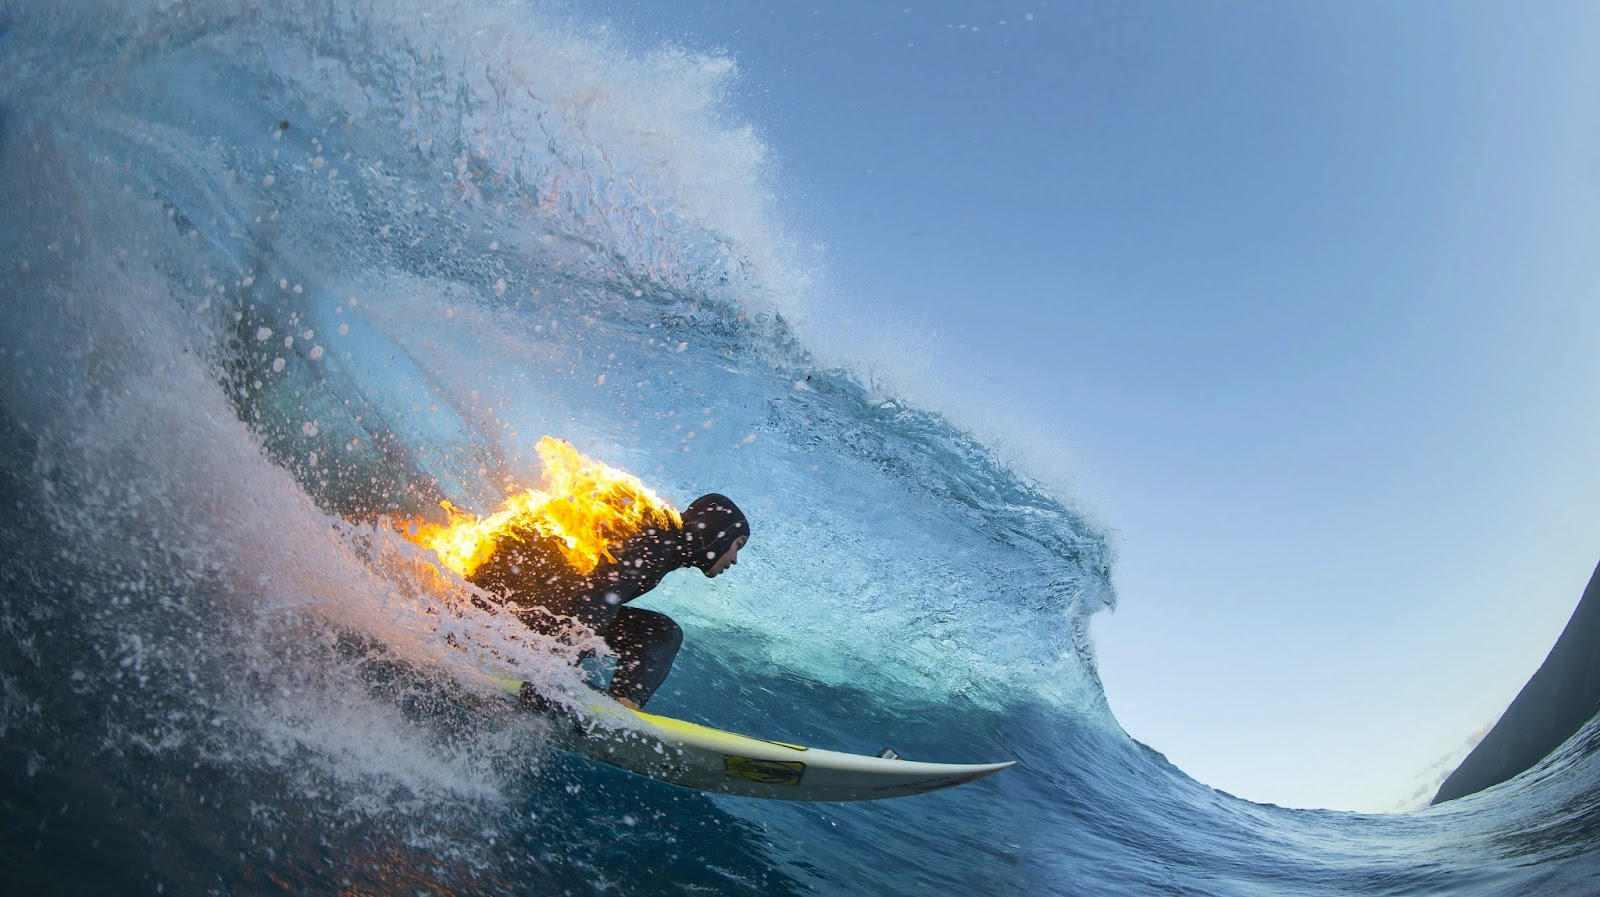 JOB on Fire Photo by Ben Thouard